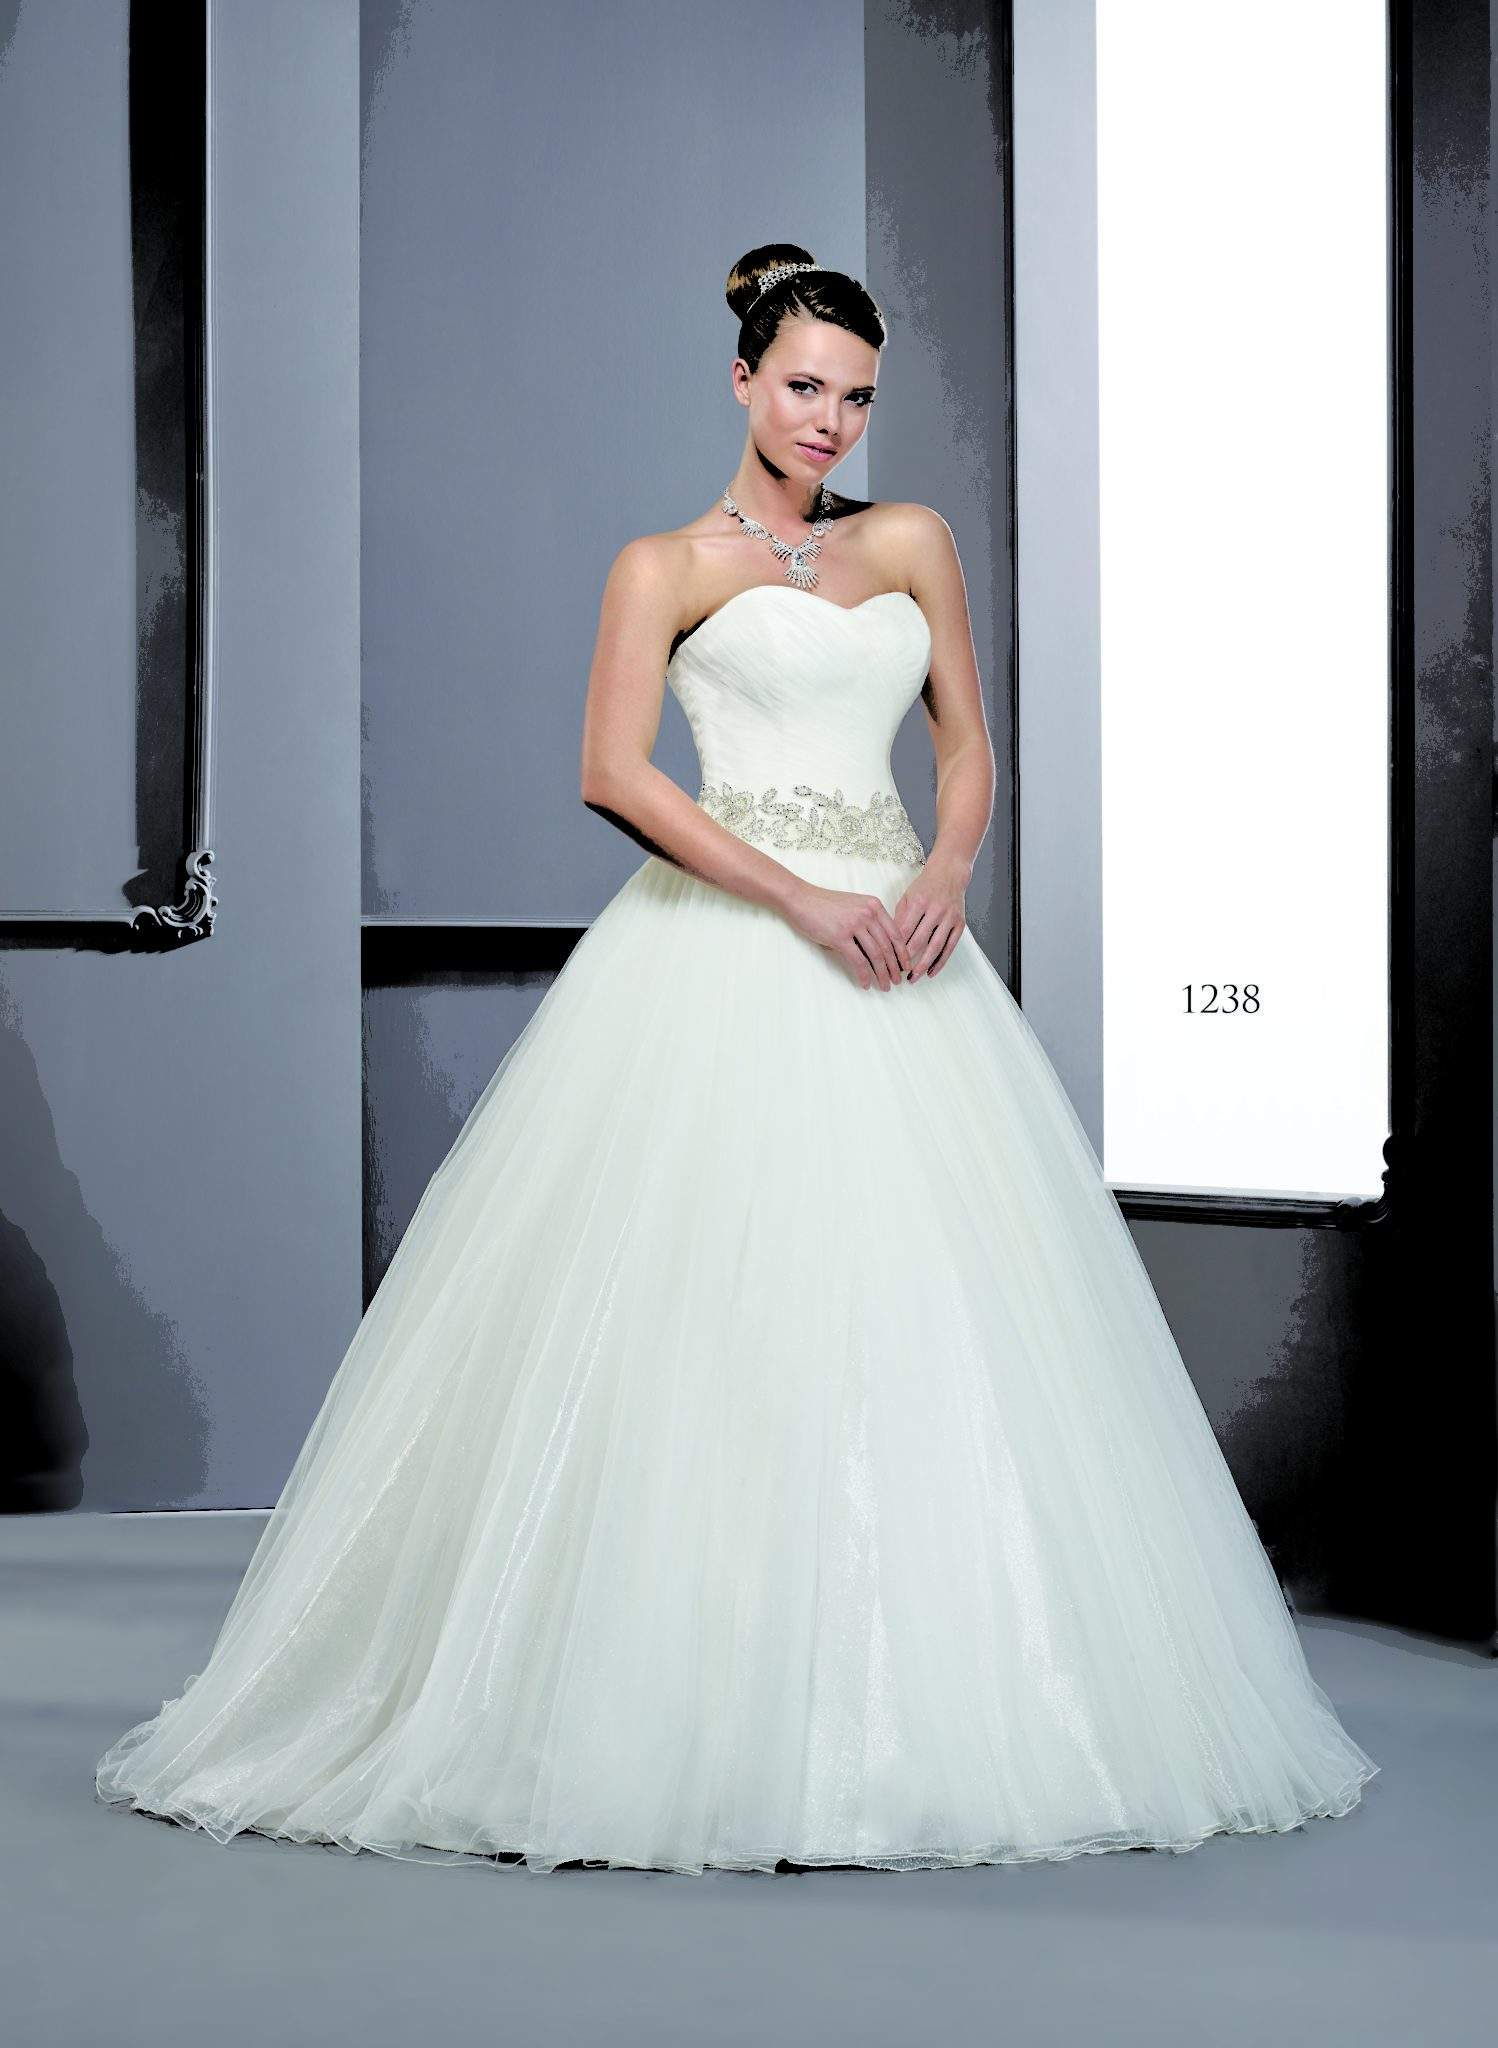 Organza ball gown Wedding Dresses - Darius Cordell Fashion Ltd